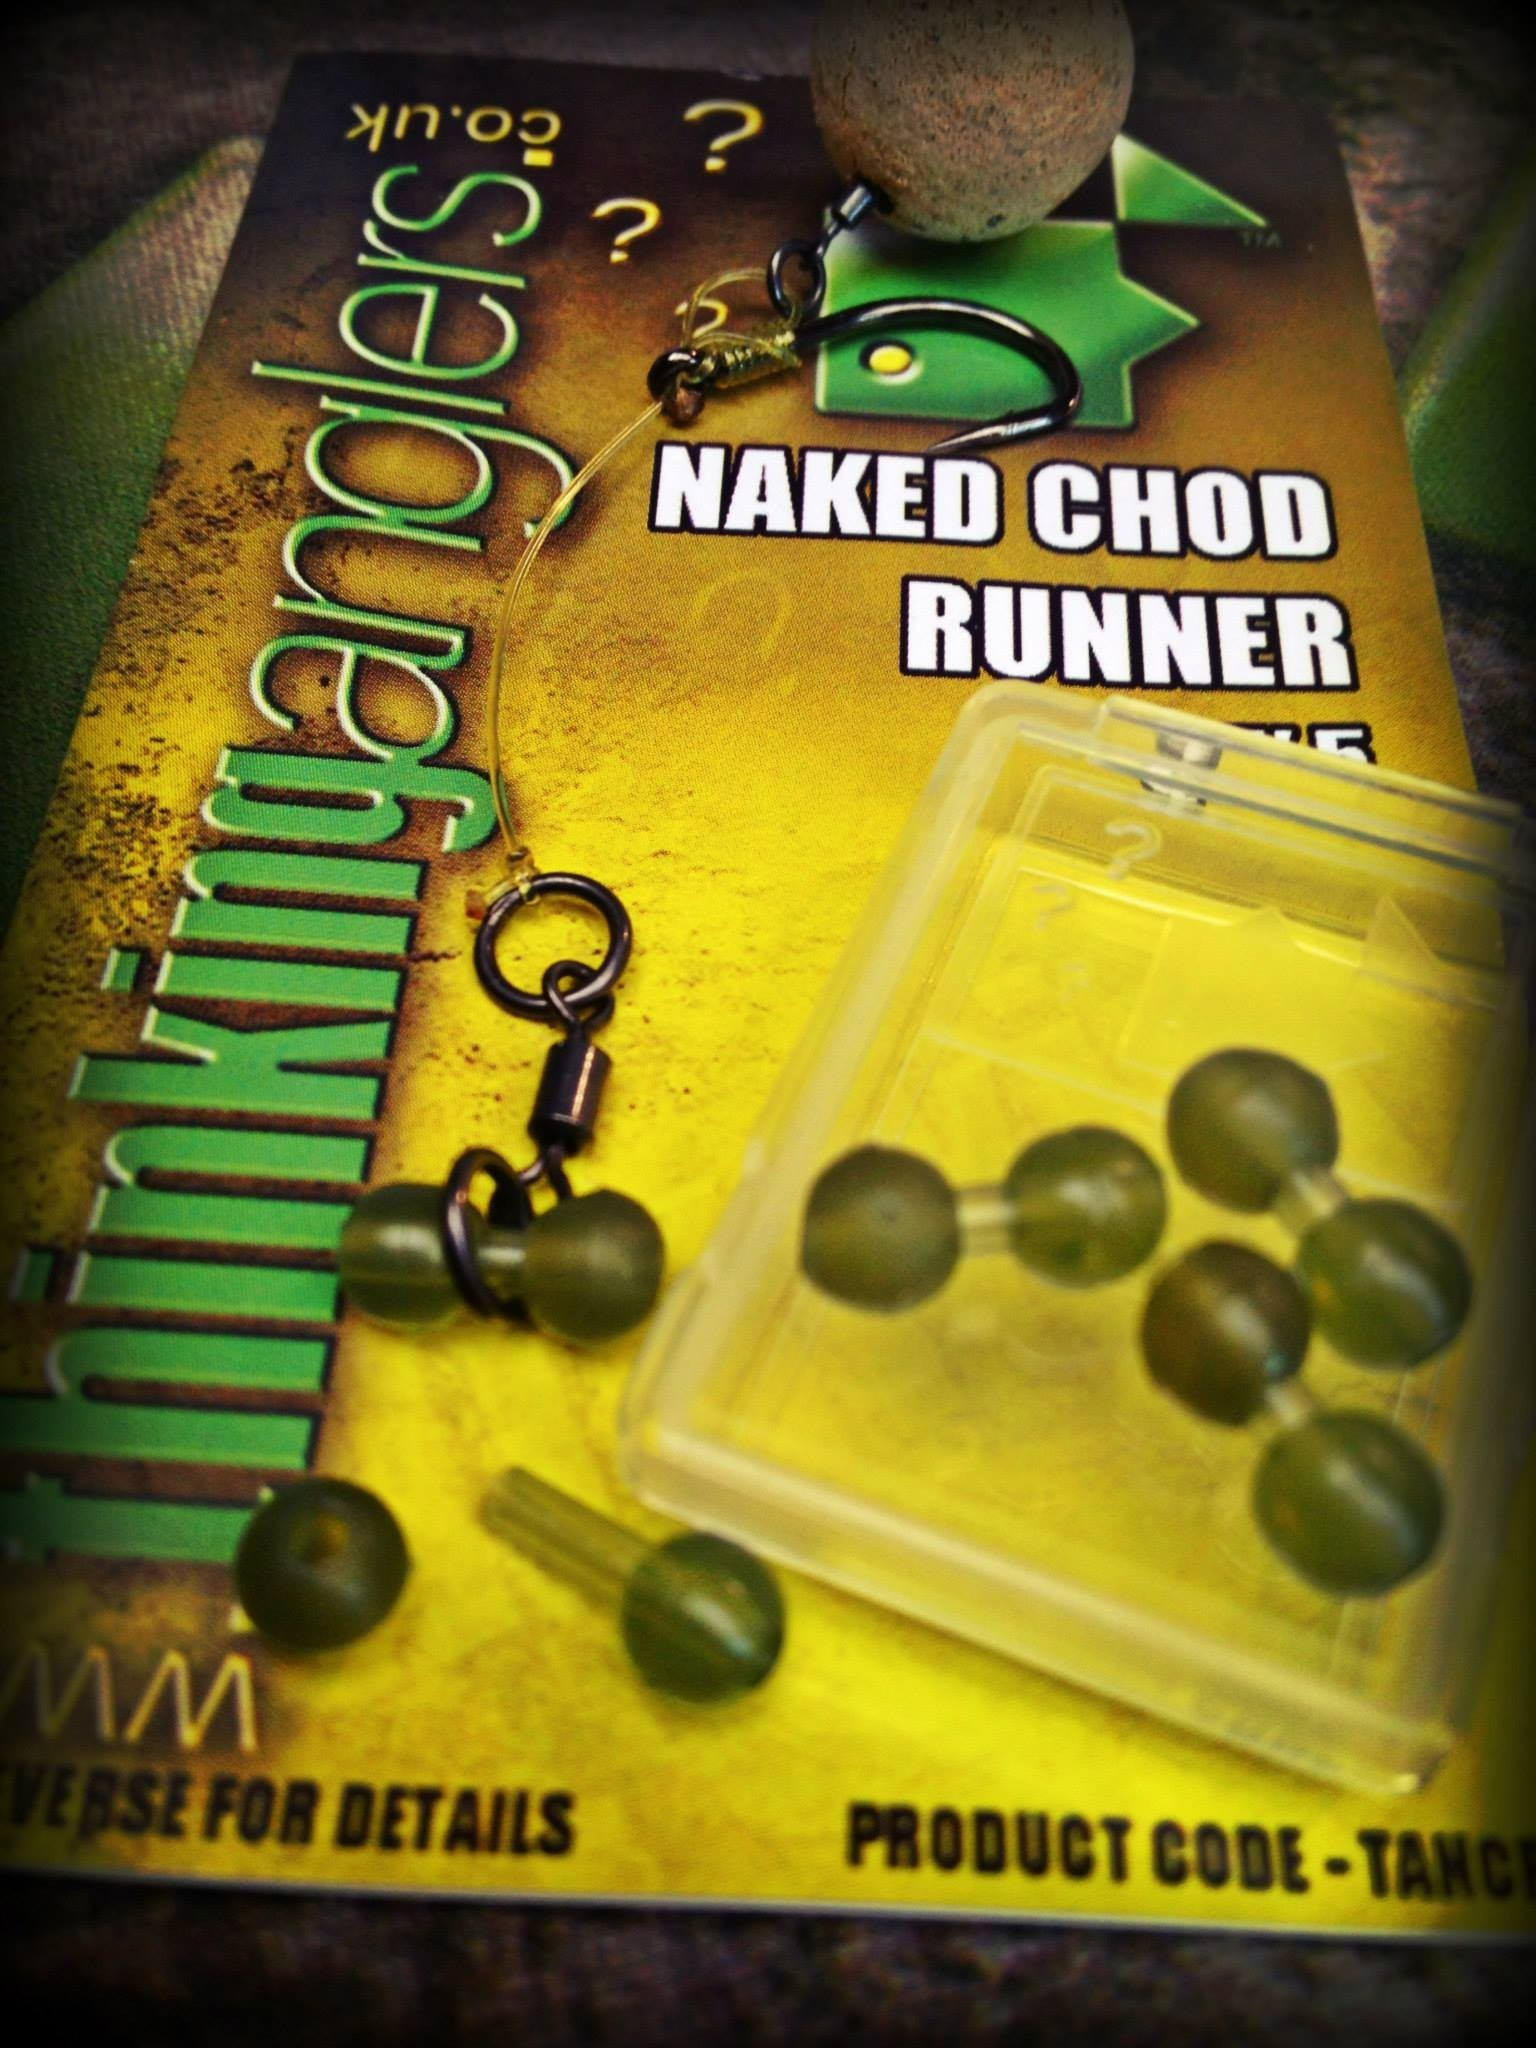 Thinking Anglers - Naked Chod Runners